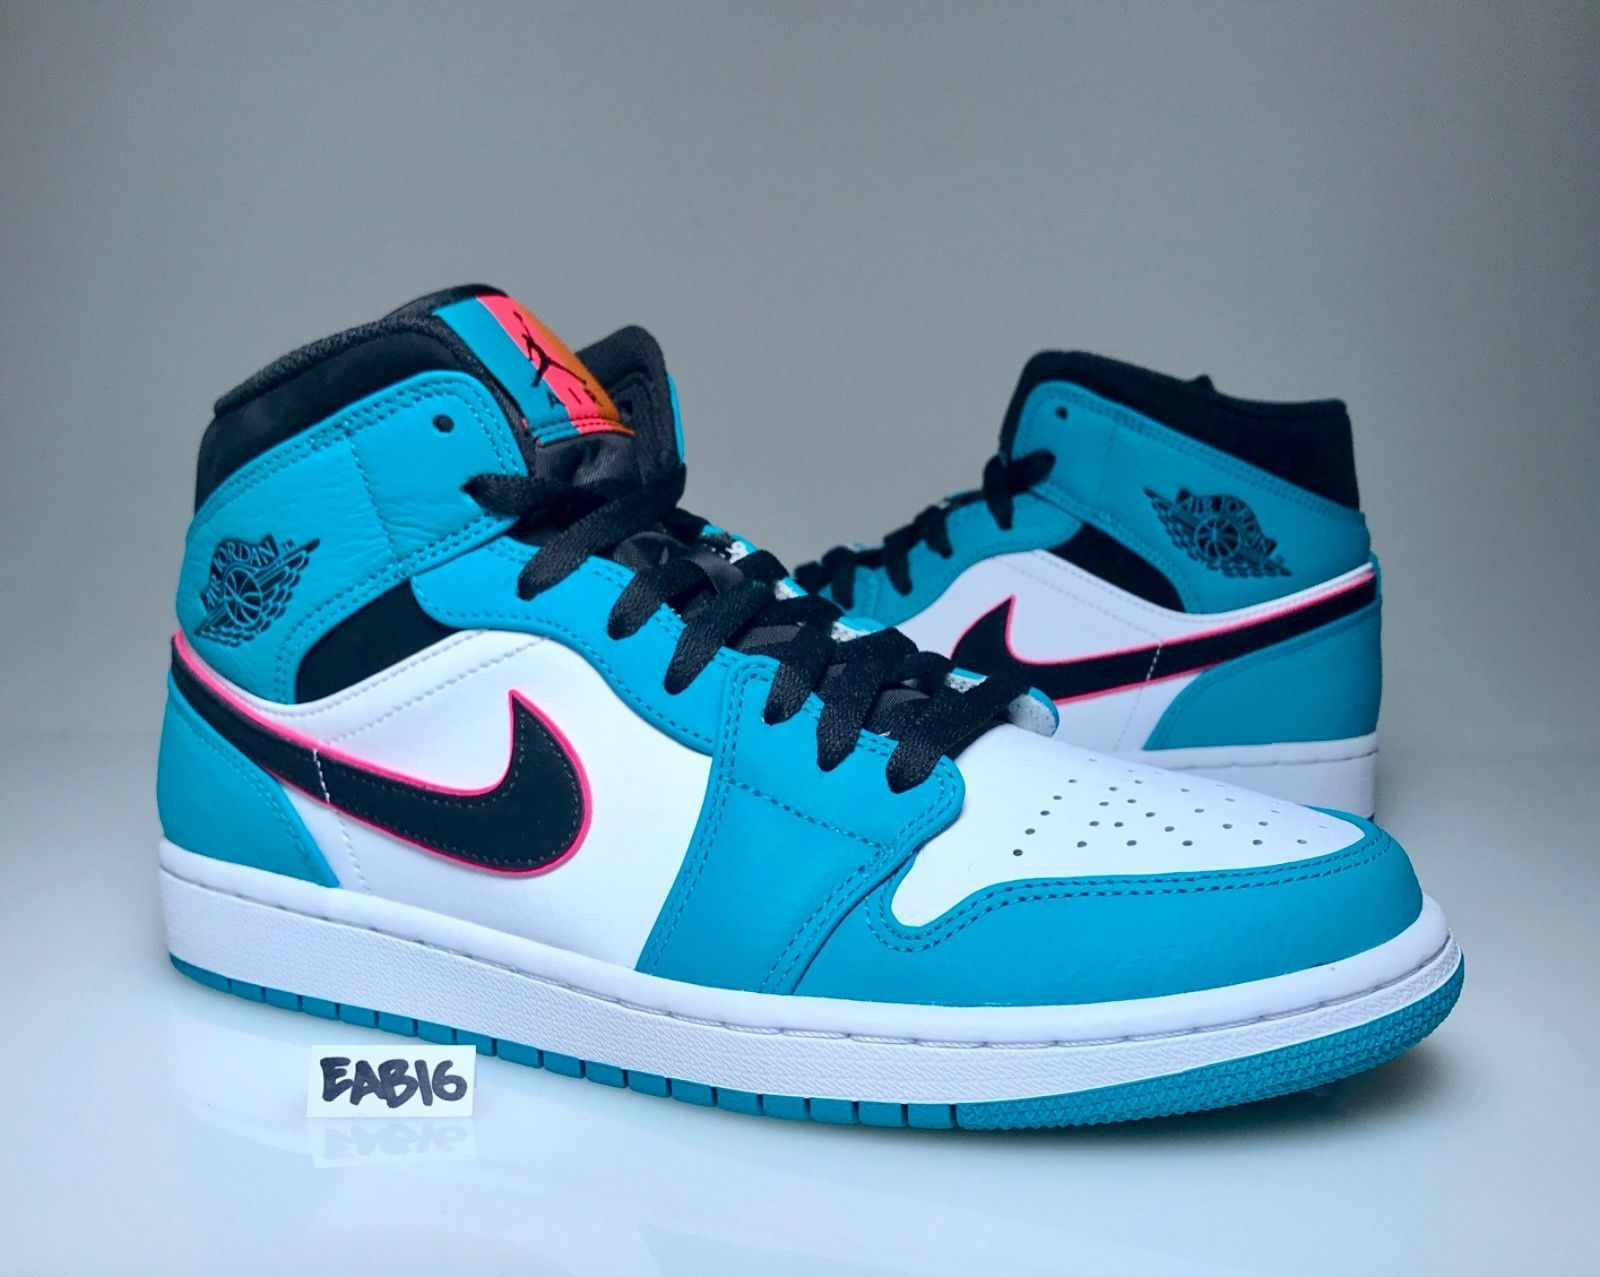 new styles f1991 05a7e Nike Air Jordan 1 Mid SE Riverwalk South Beach Turbo Green Black Pink  852542 306